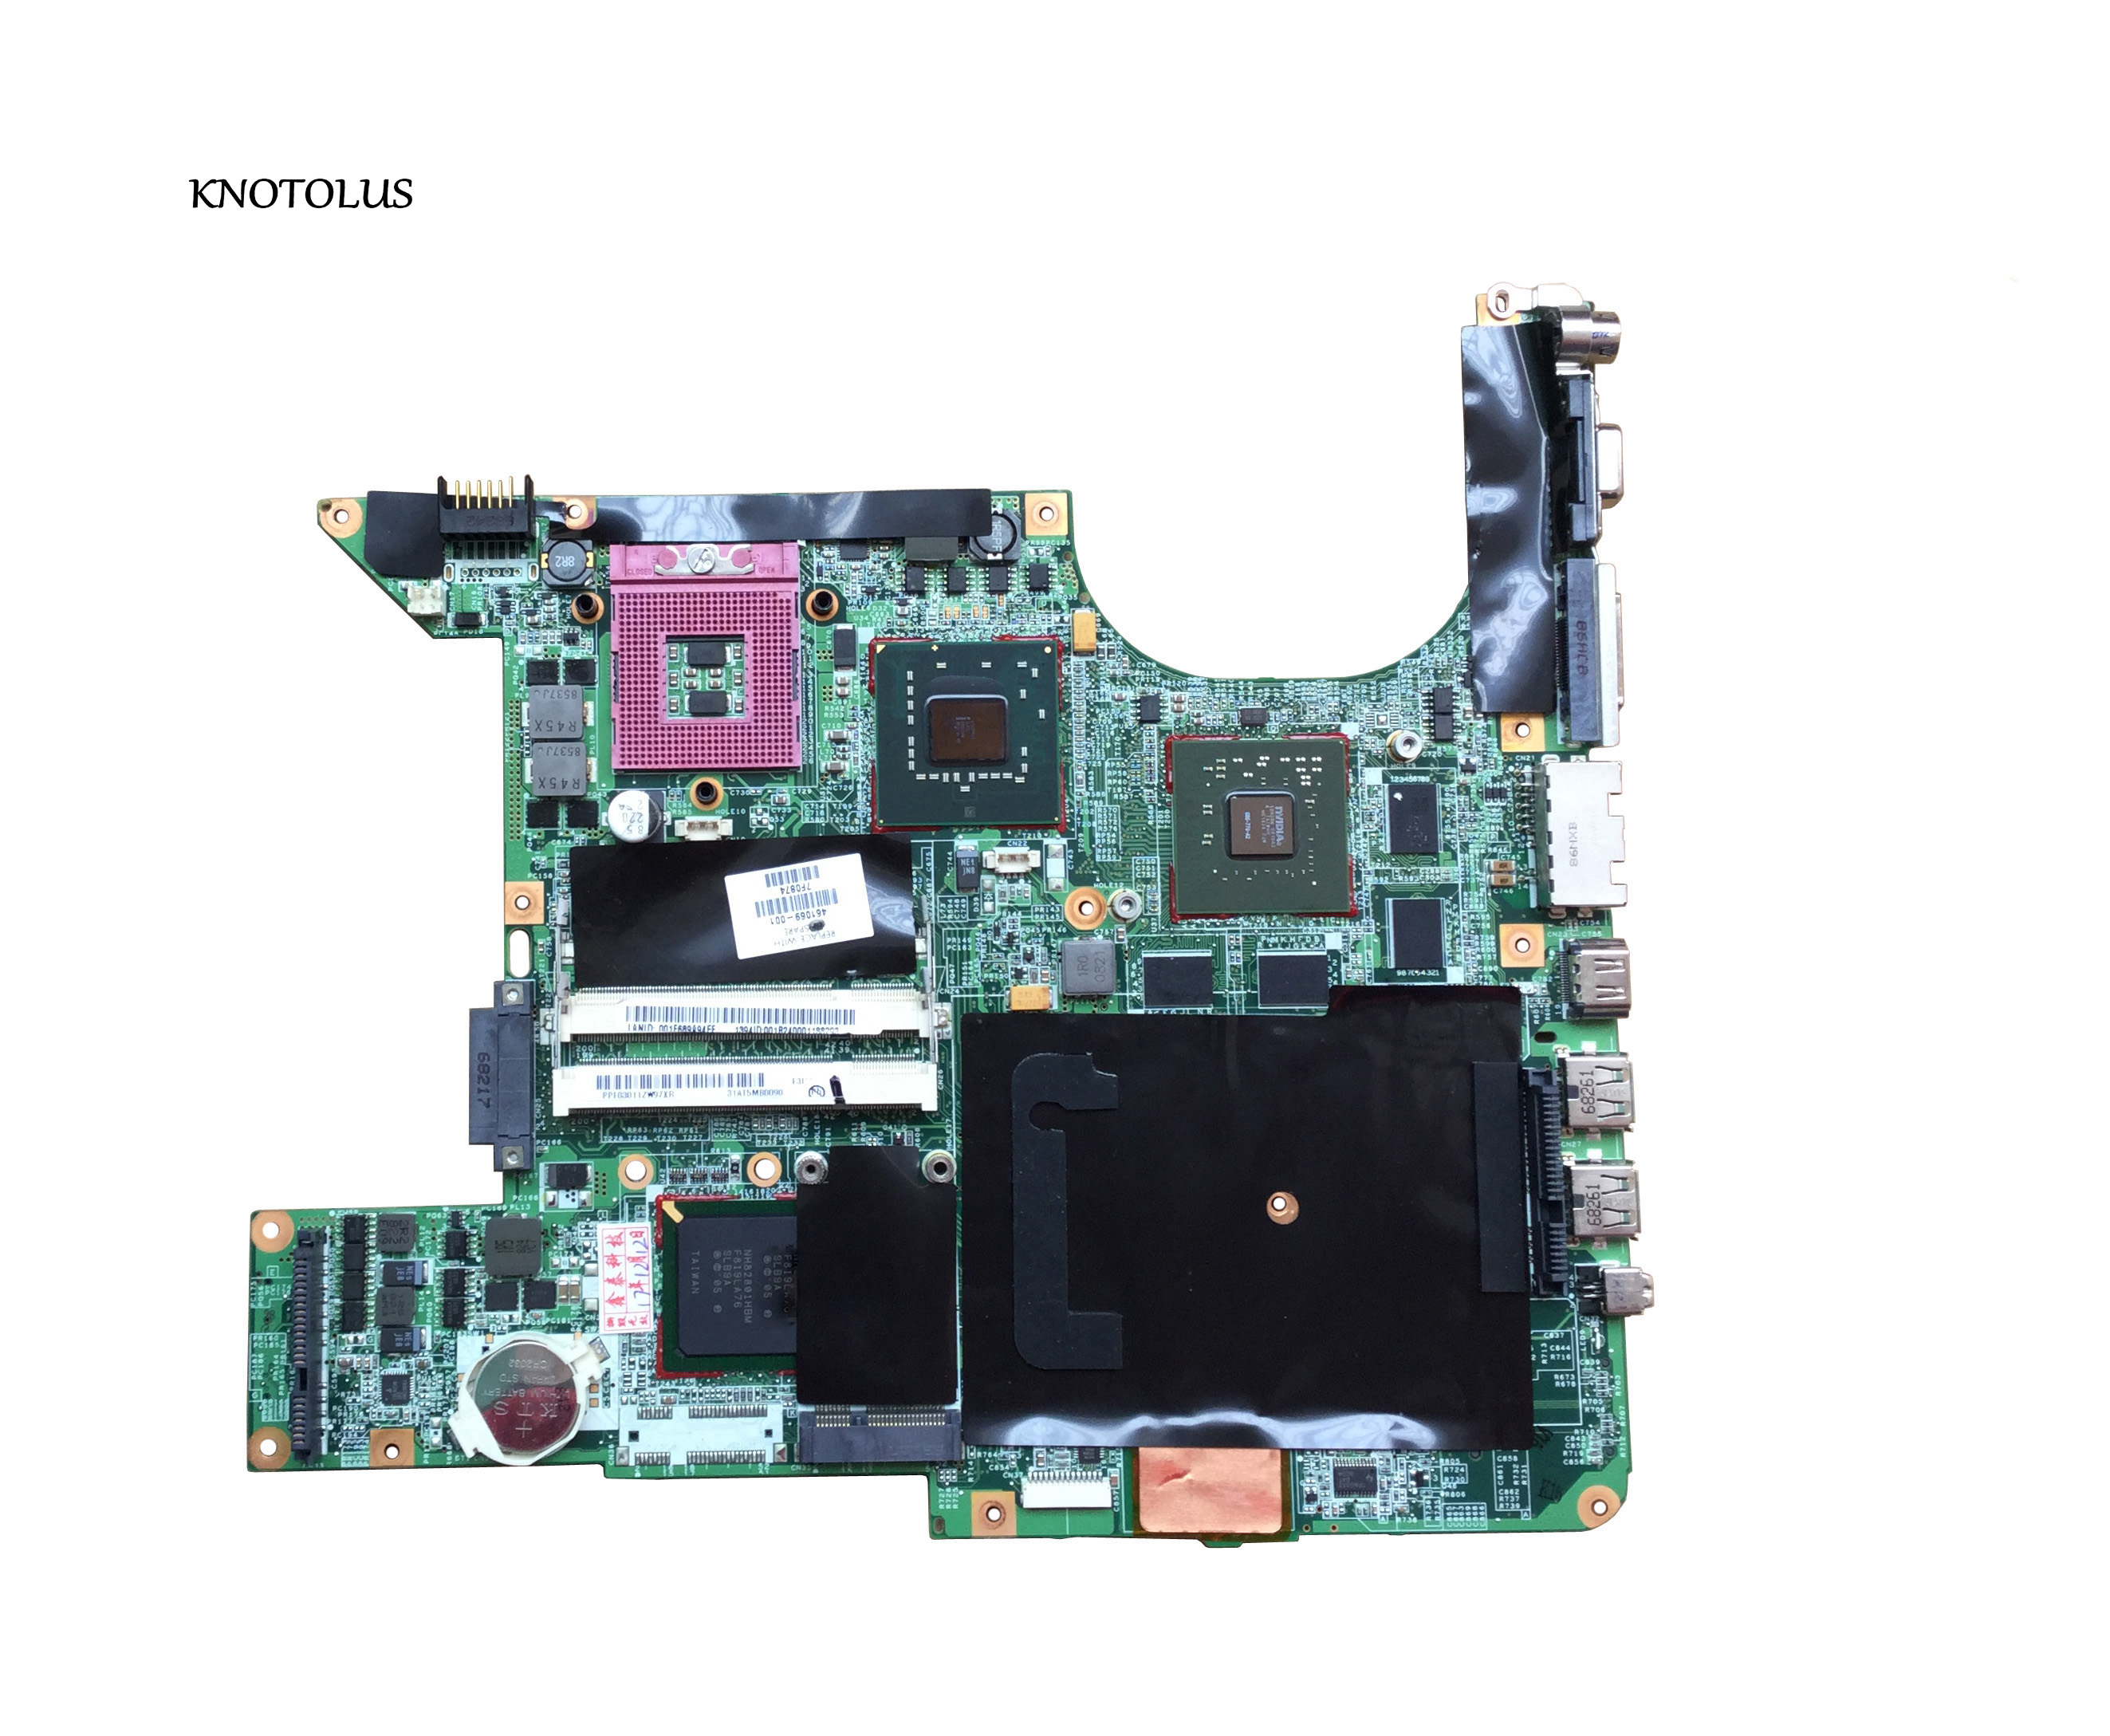 461069-001 For Hp Dv9000 447983-001 PM965 Motherboard In Good Condition